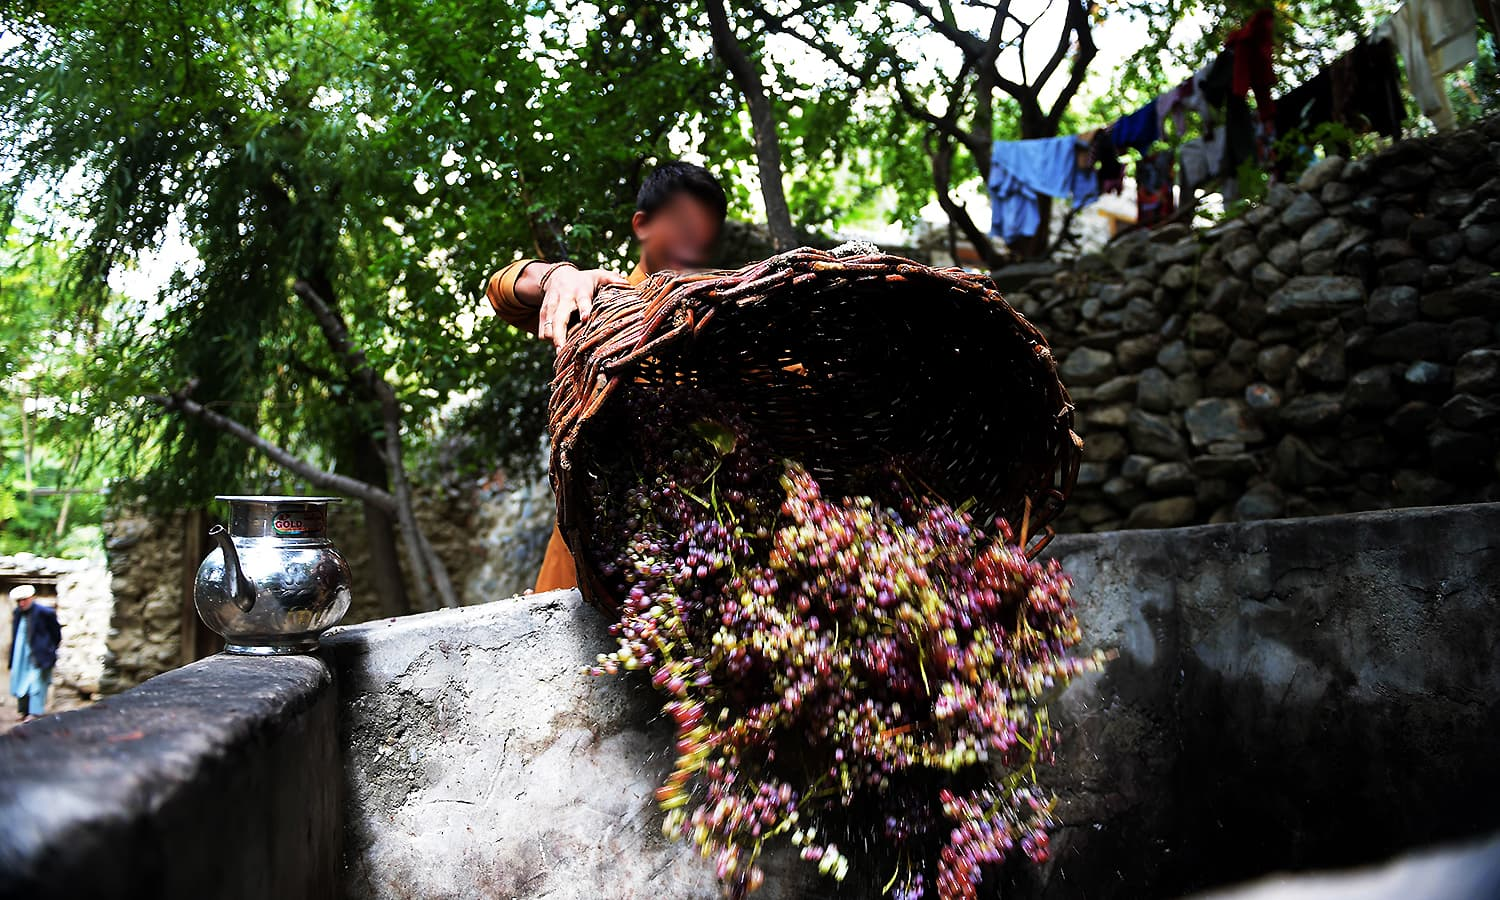 A local resident unloads a basket of freshly picked grapes into a cement tank. ─ AFP